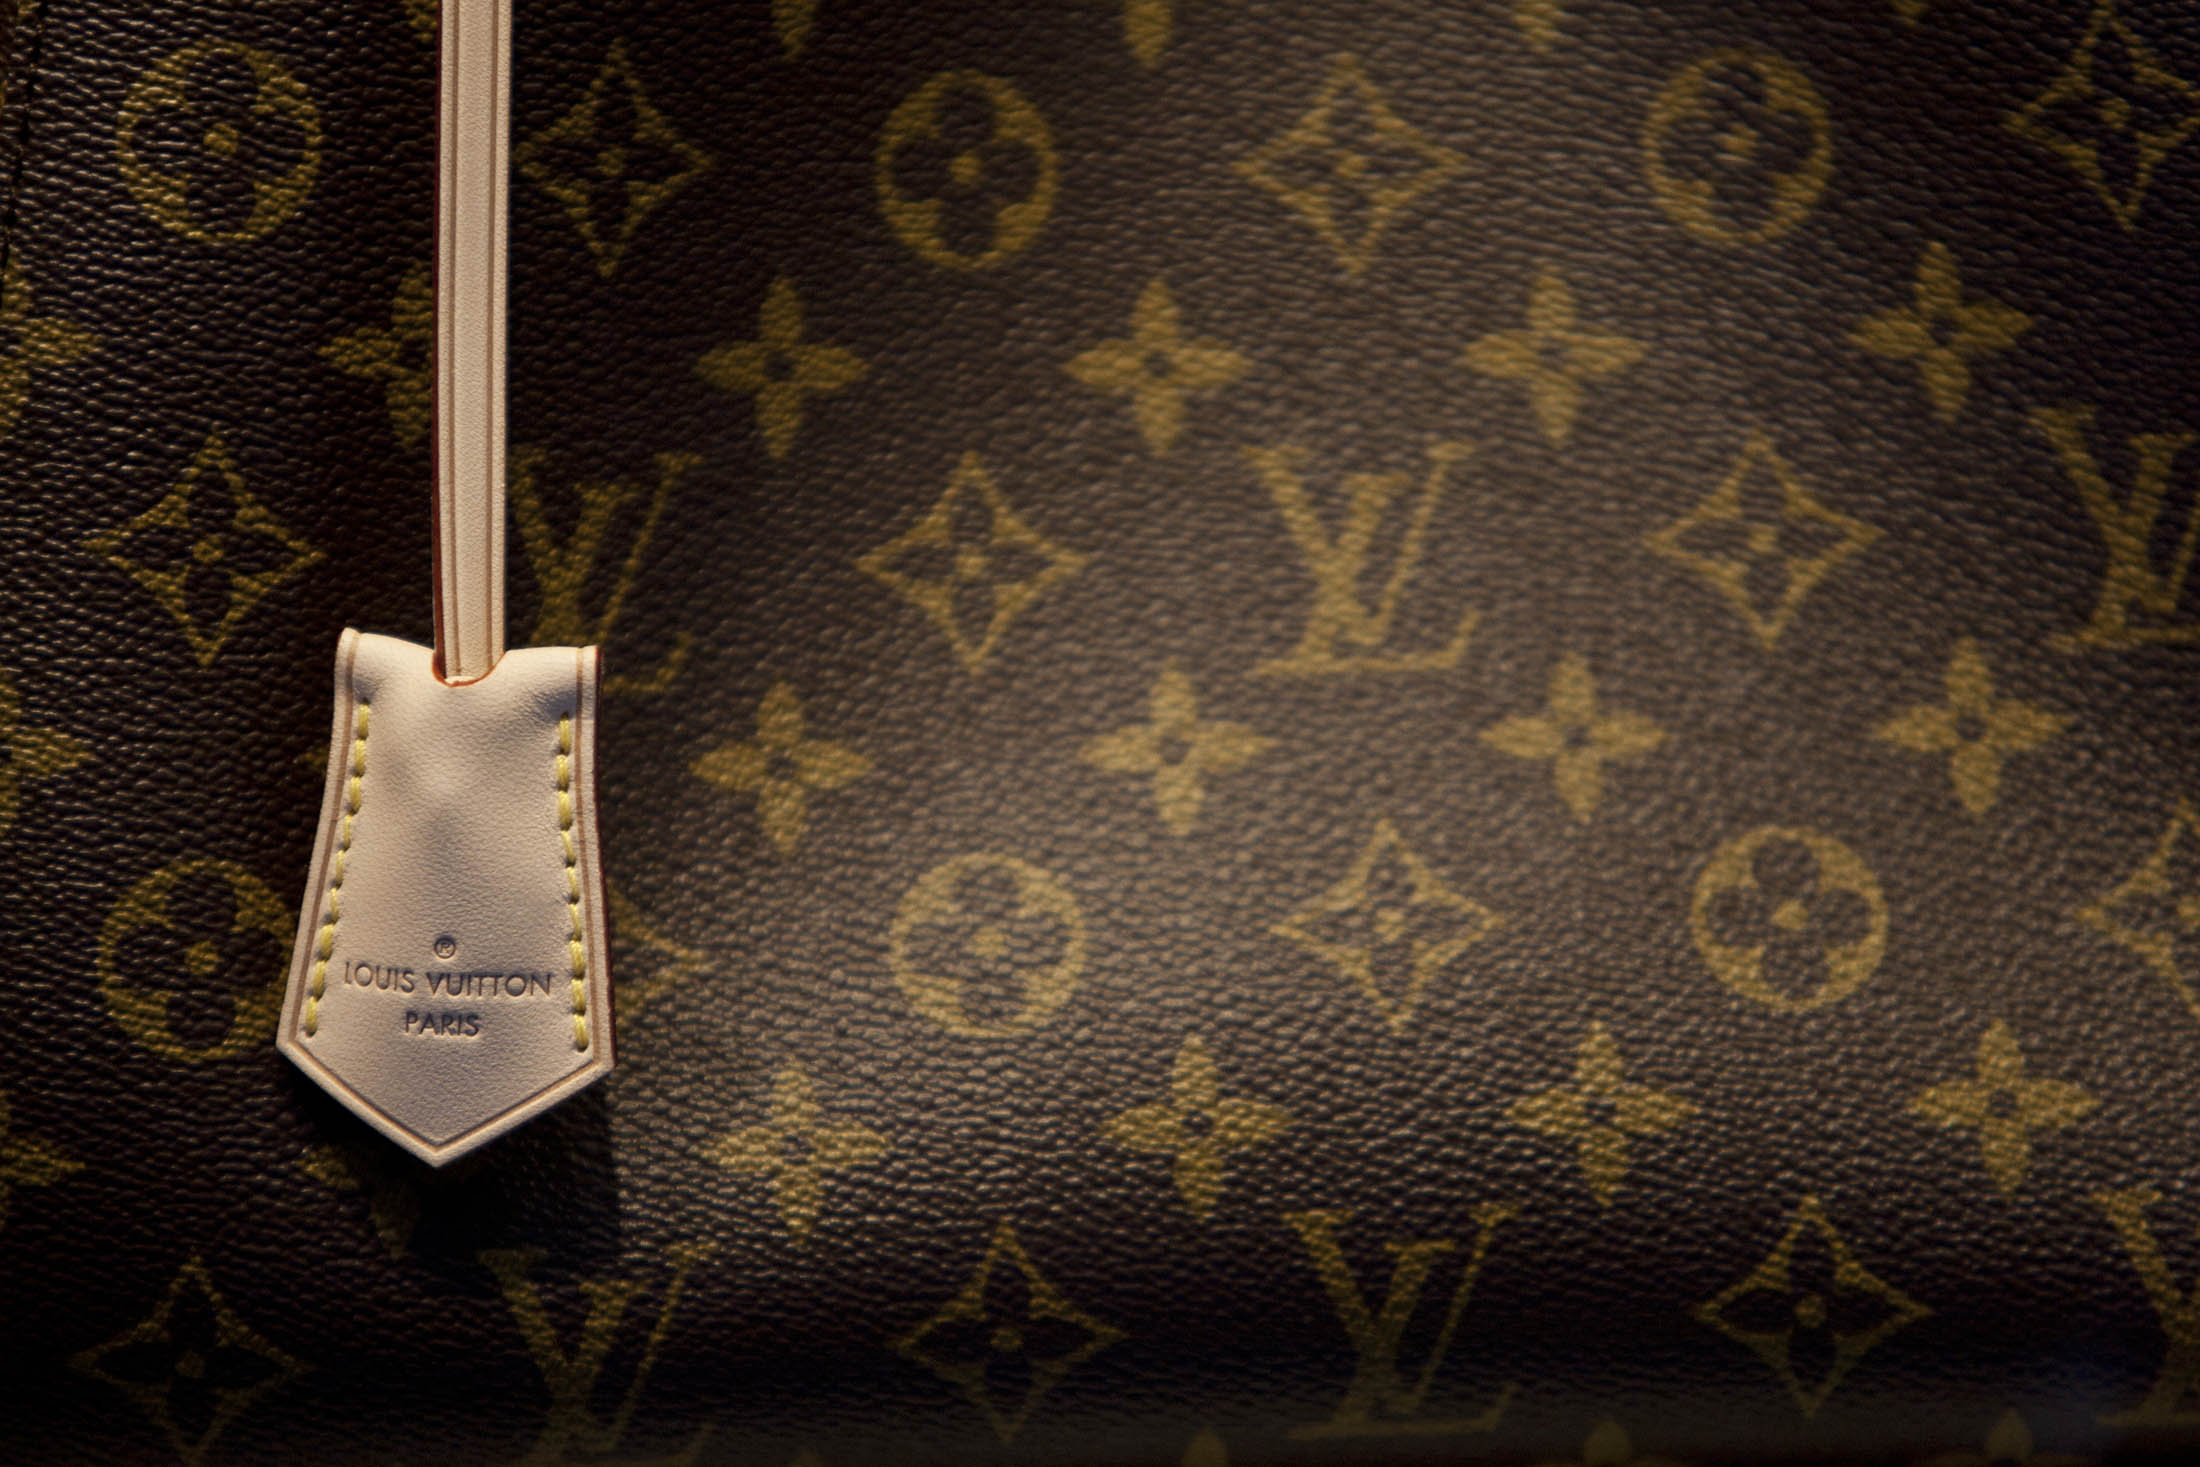 LOUIS VUITTON x FRAGMENT: A POP-UP STORE TO OPEN IN HARRODS - News ...